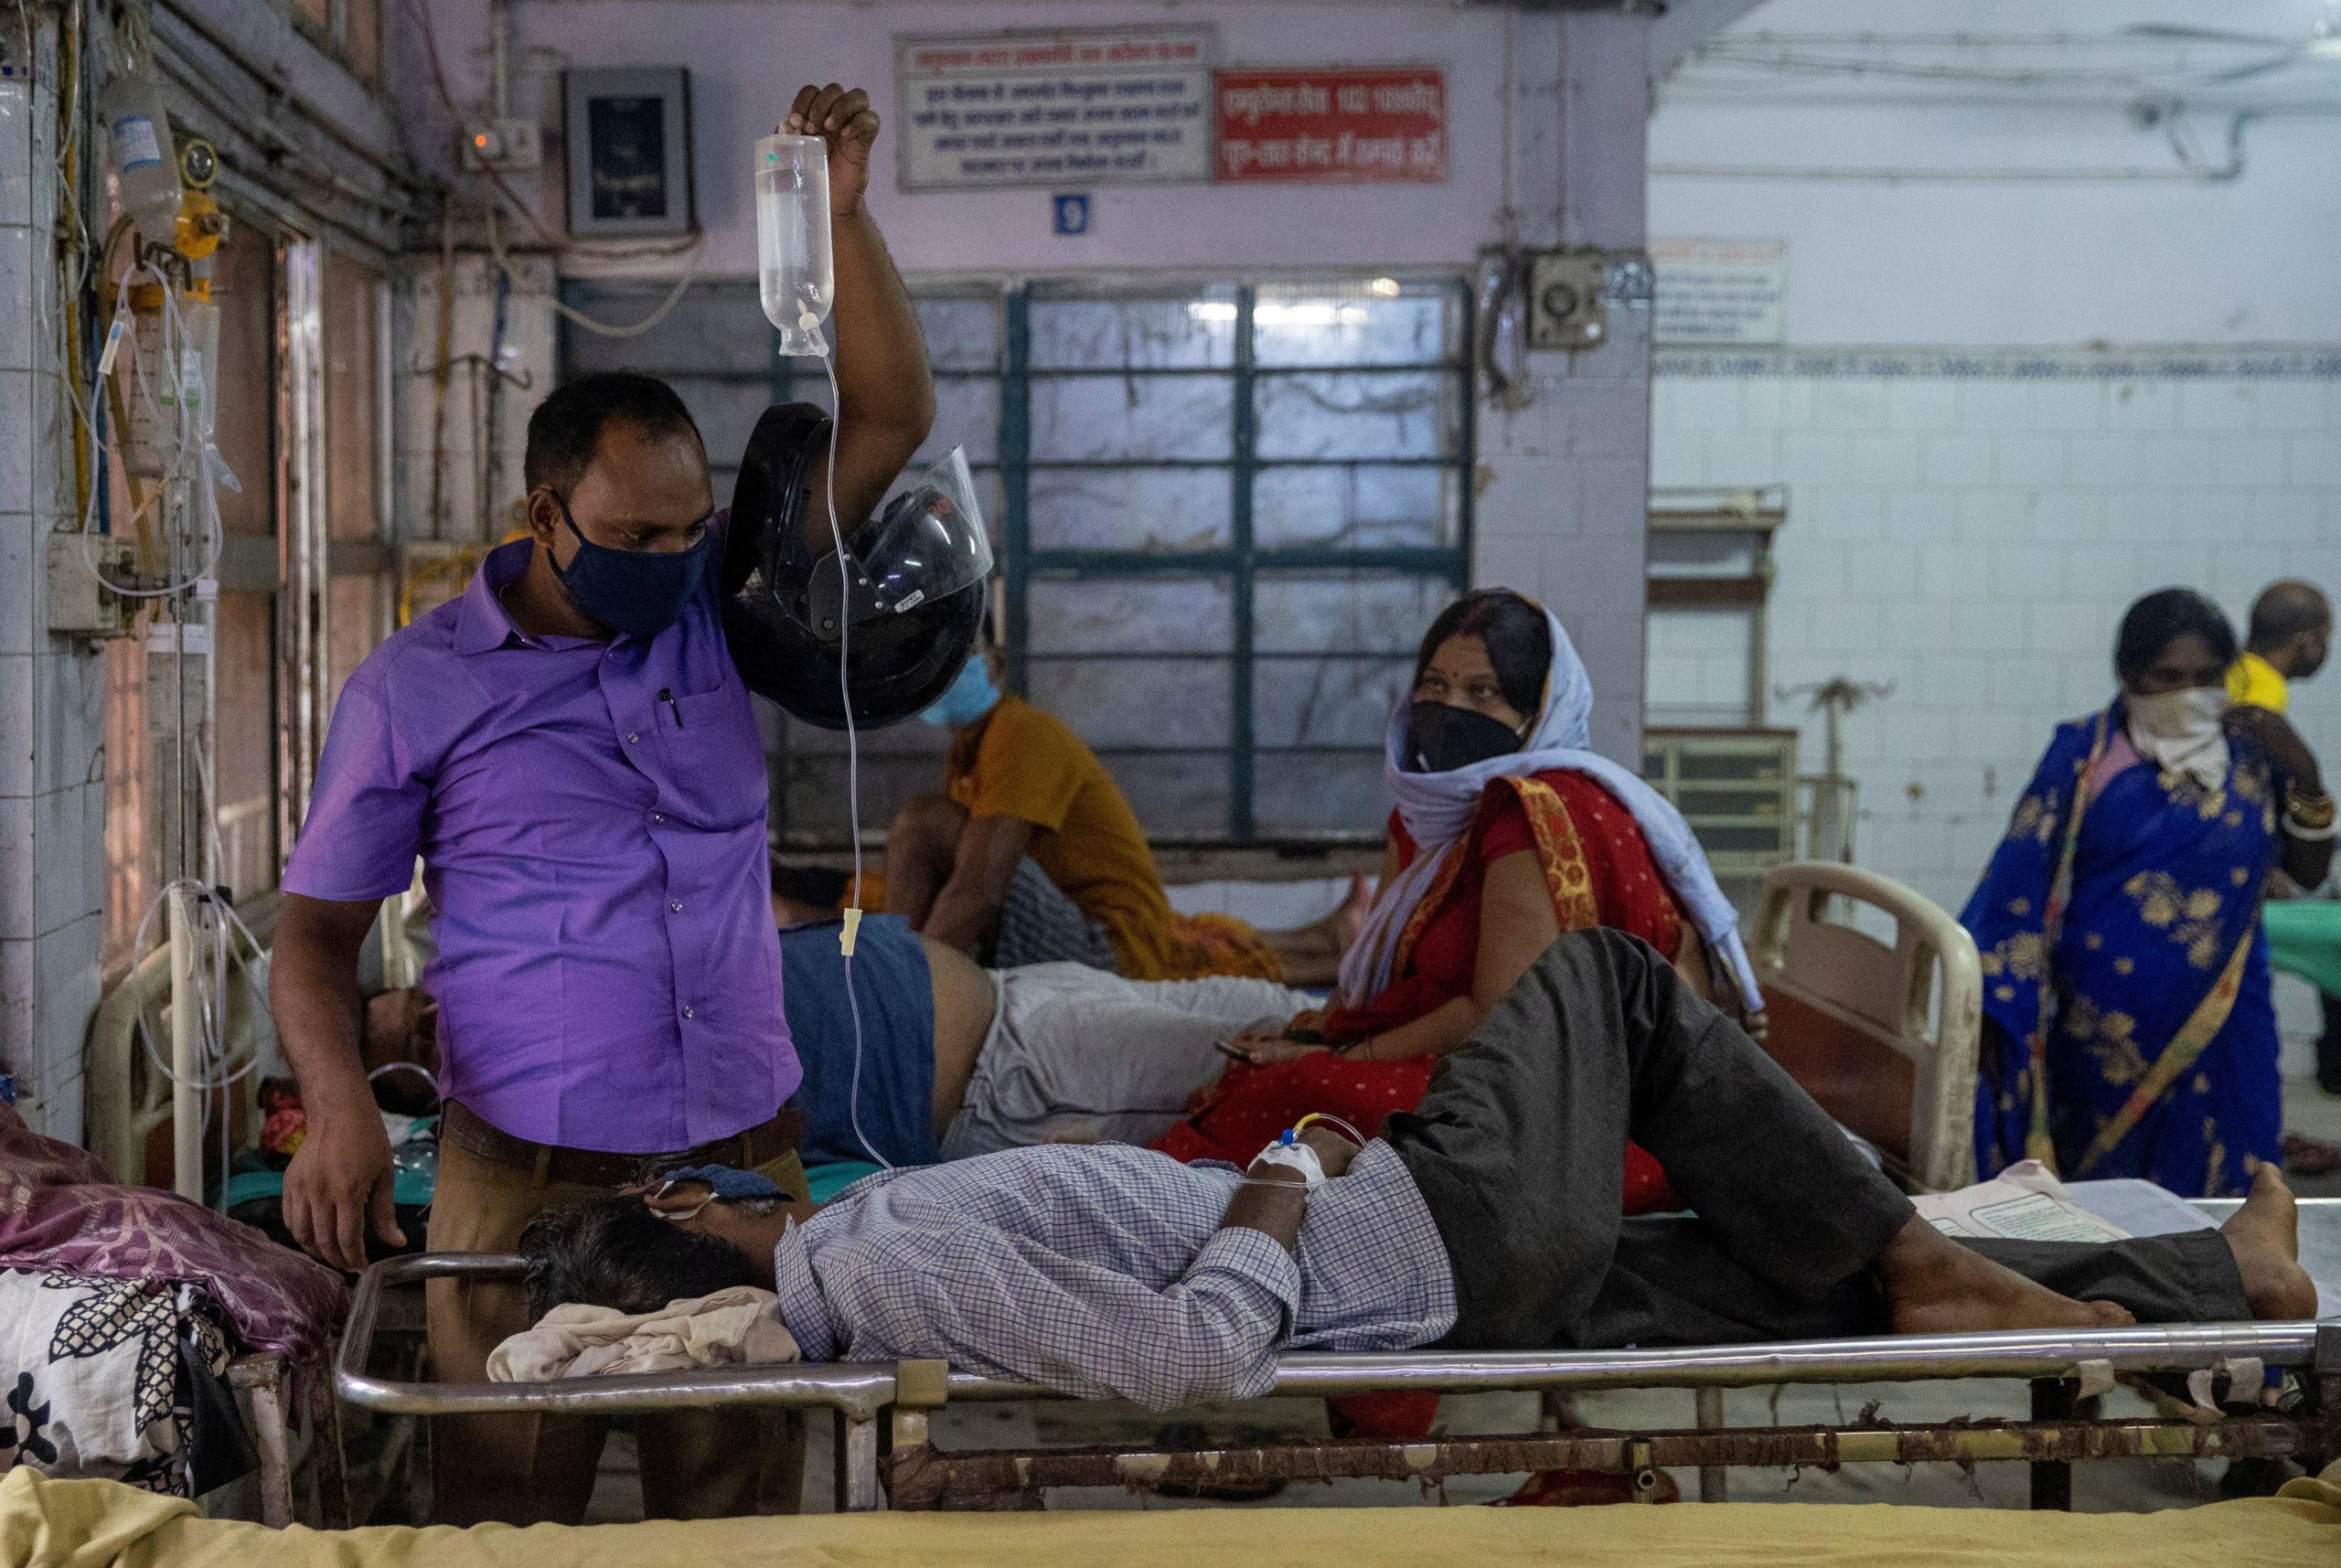 A man holds up an intravenous (IV) drip being used to treat his relative as they wait for him to be transferred to a hospital bed in the emergency ward of Jawahar Lal Nehru Medical College and Hospital, during the coronavirus disease (COVID-19) outbreak, in Bhagalpur, Bihar, India, July 28, 2020. REUTERS/Danish Siddiqui